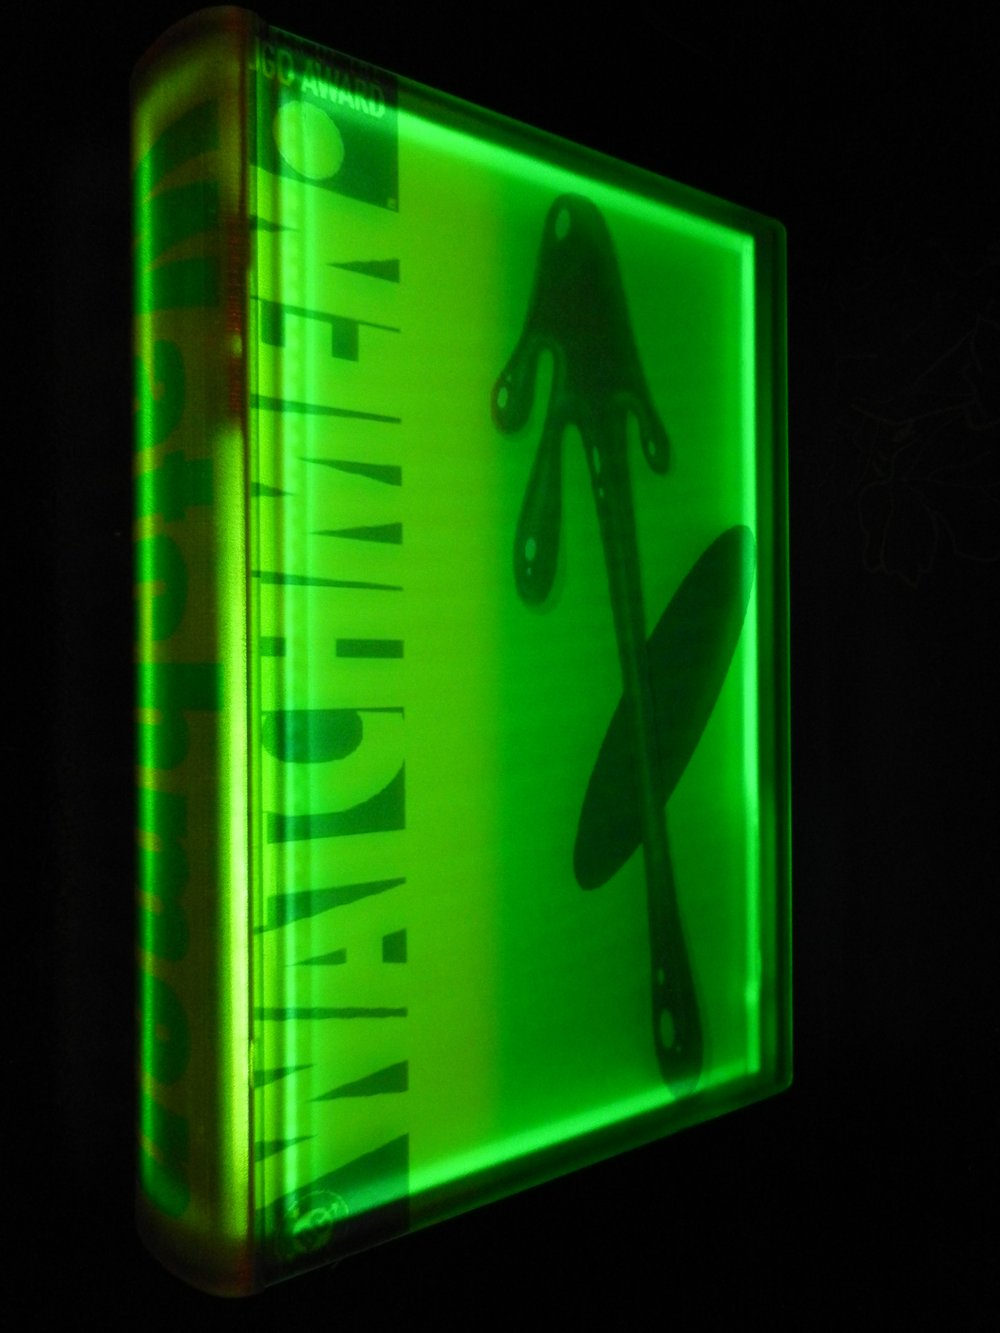 Airan Kang (Seoul)   Watchmen  2009  LED Lights, Resin Encasement and Custom Electronics